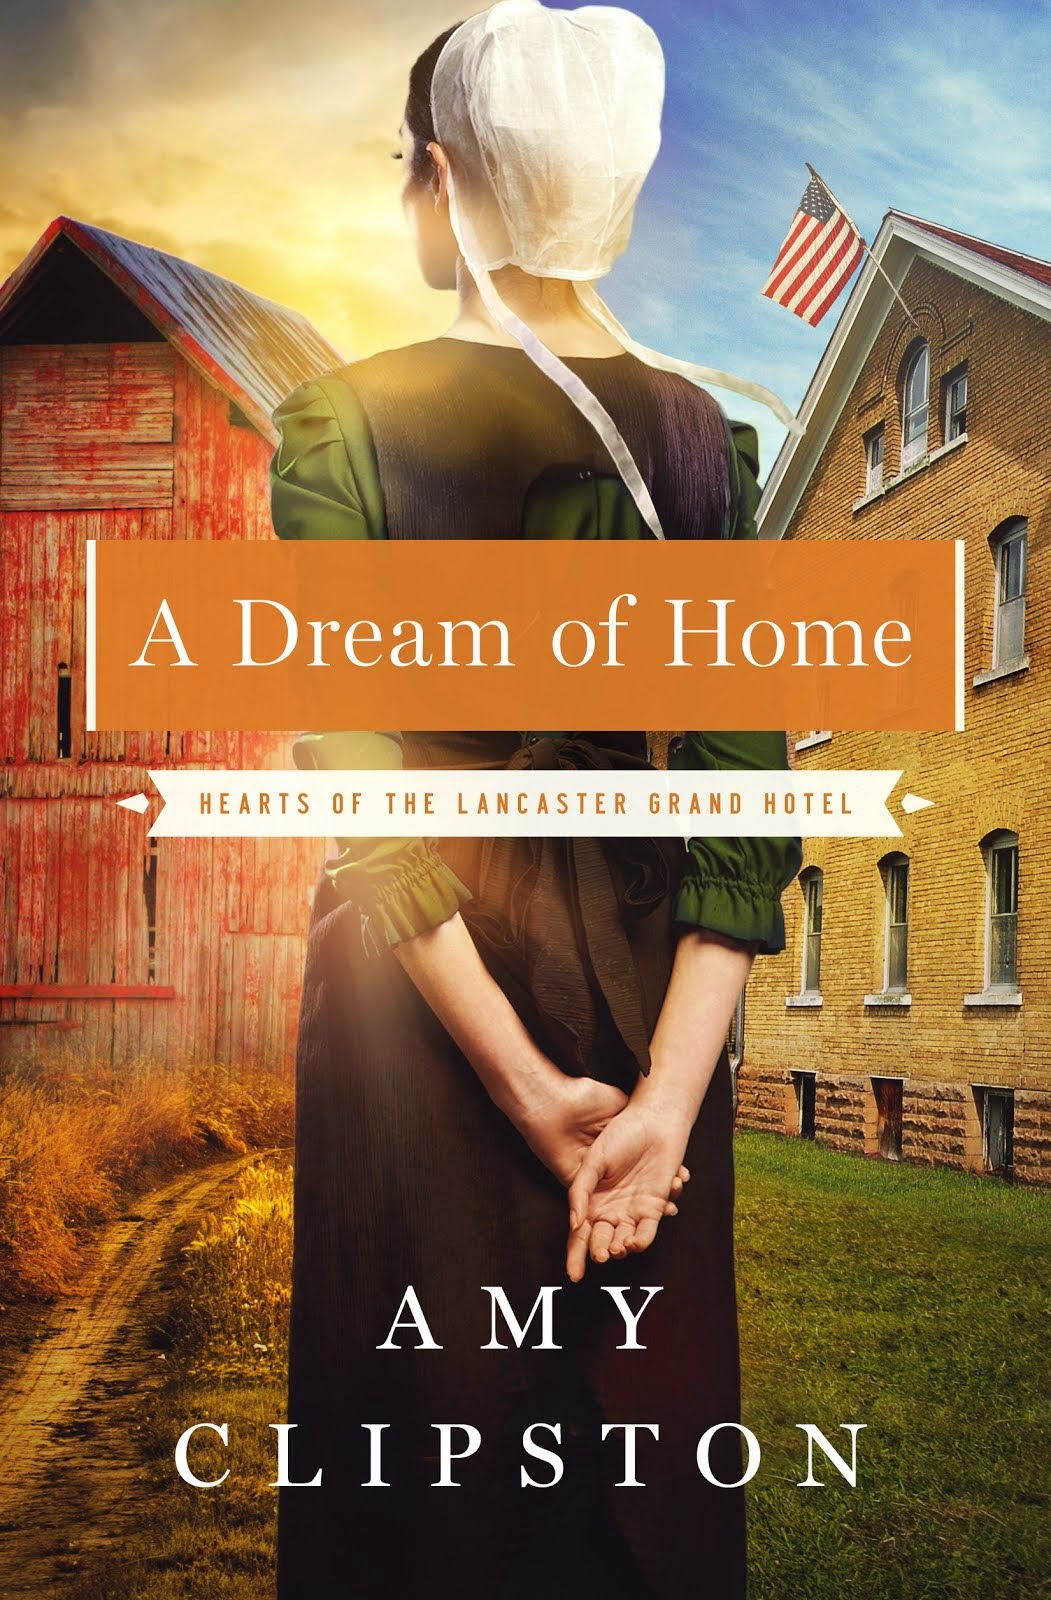 Amy Clipston 2-book Giveaway ends Nov 7